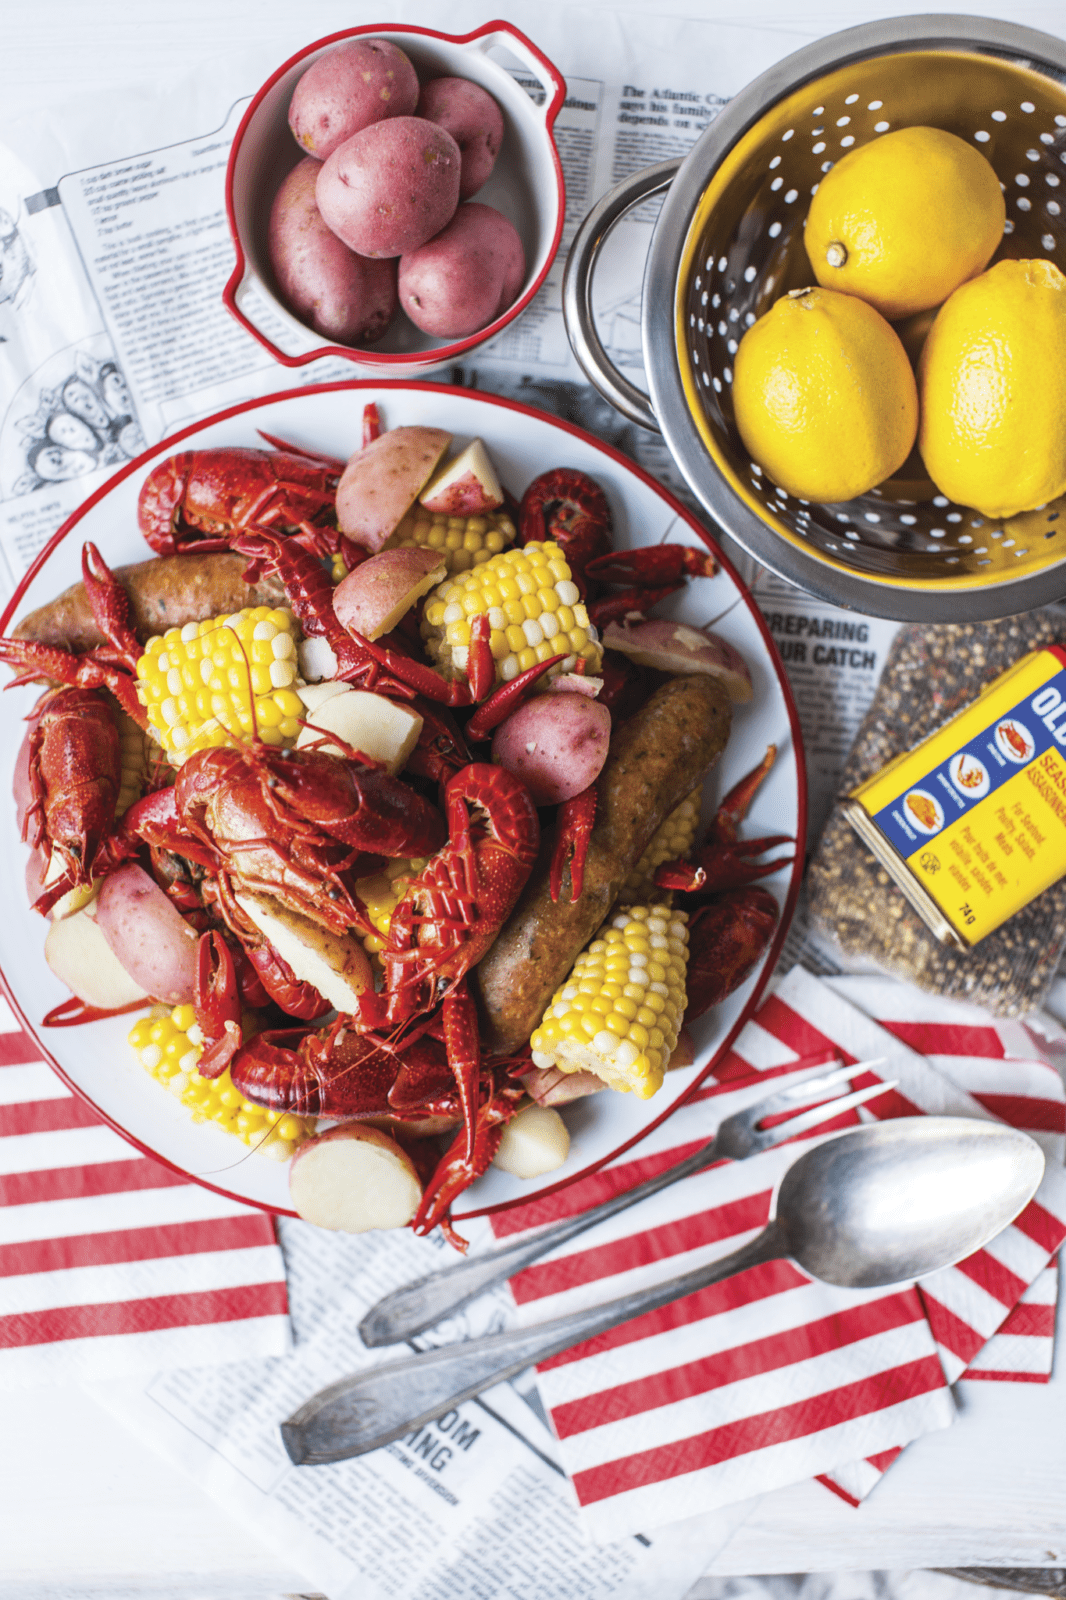 Chef Matt Pettit's Favourite Recipes from The Great Shellfish Cookbook